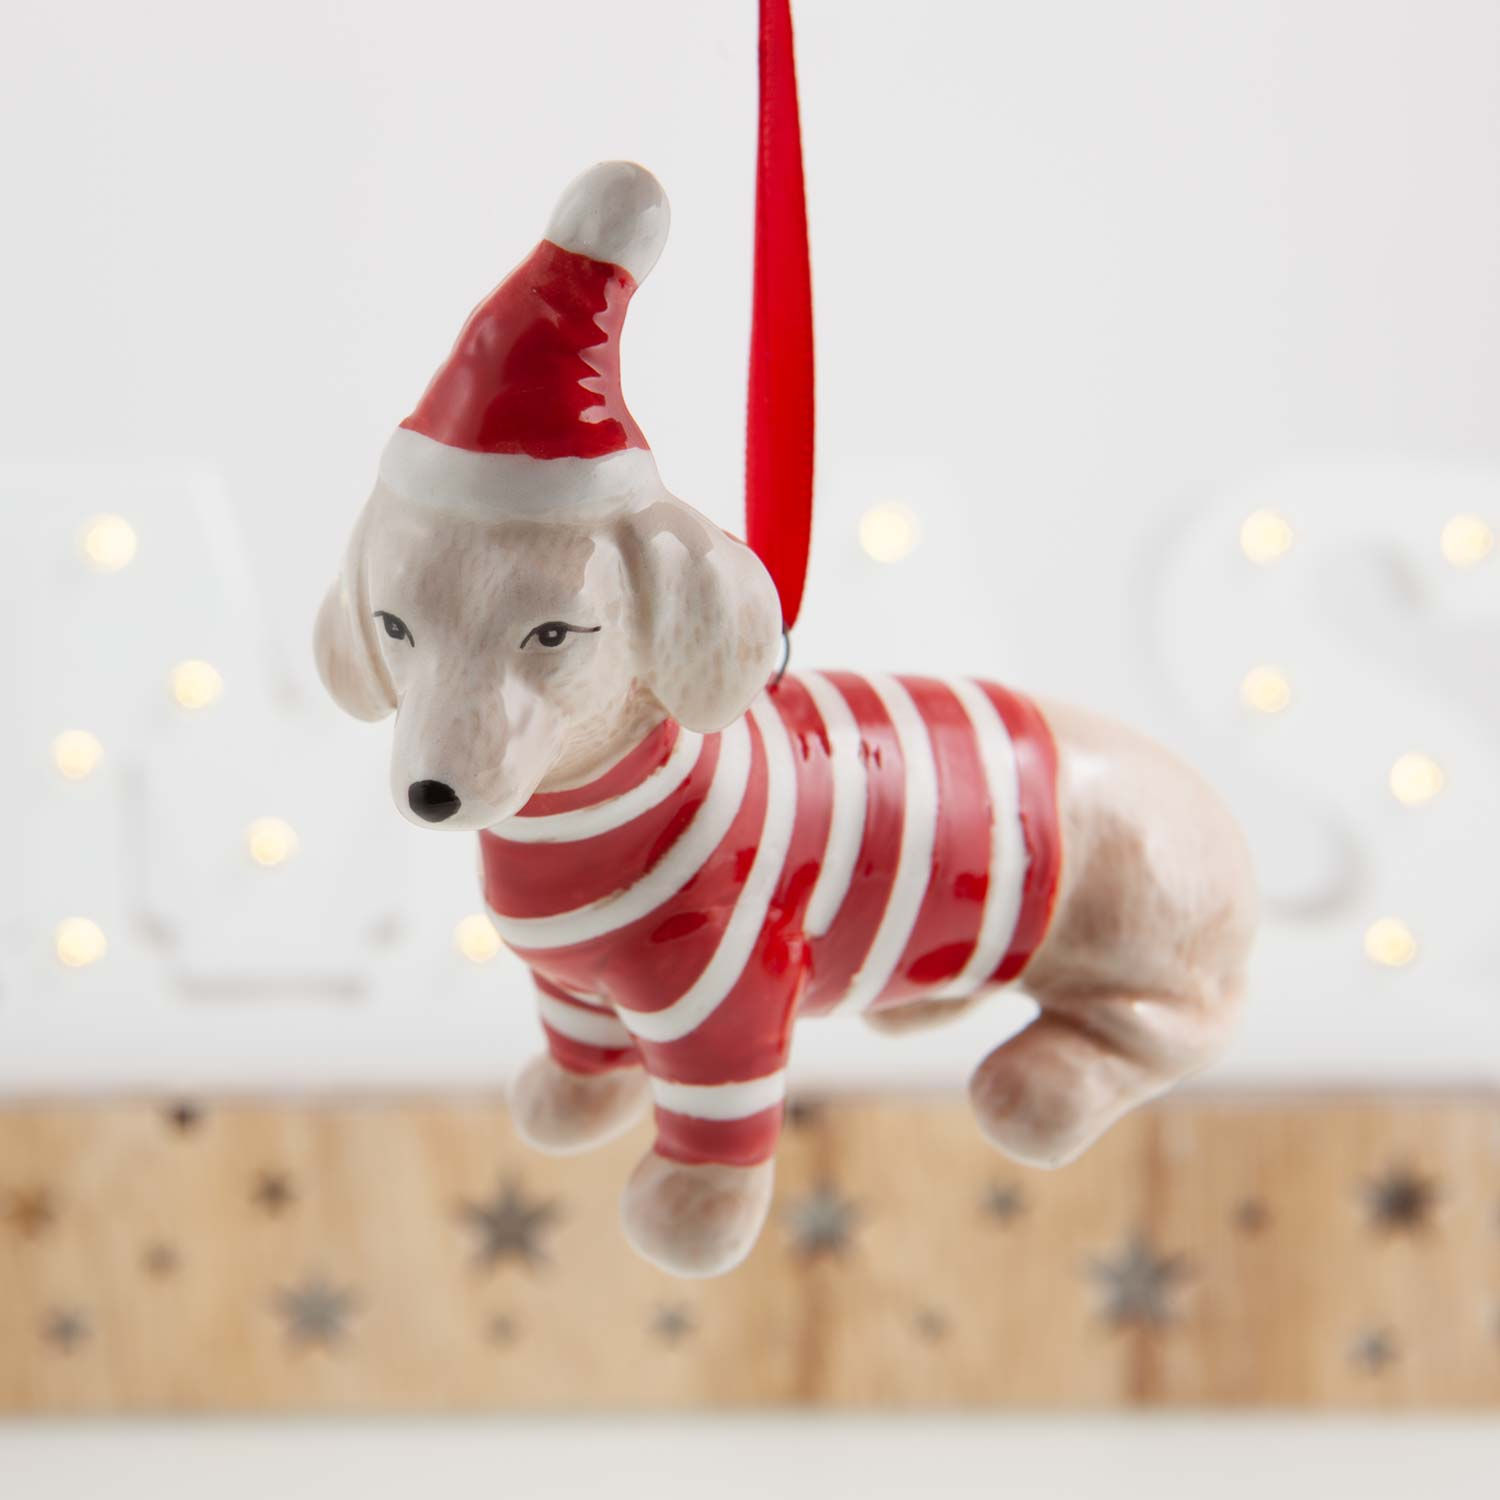 Dog Krazy Gifts -  Ceramic Hanging Dachshund Decoration available from the Christmas Grotto at DogKrazyGifts.co.uk